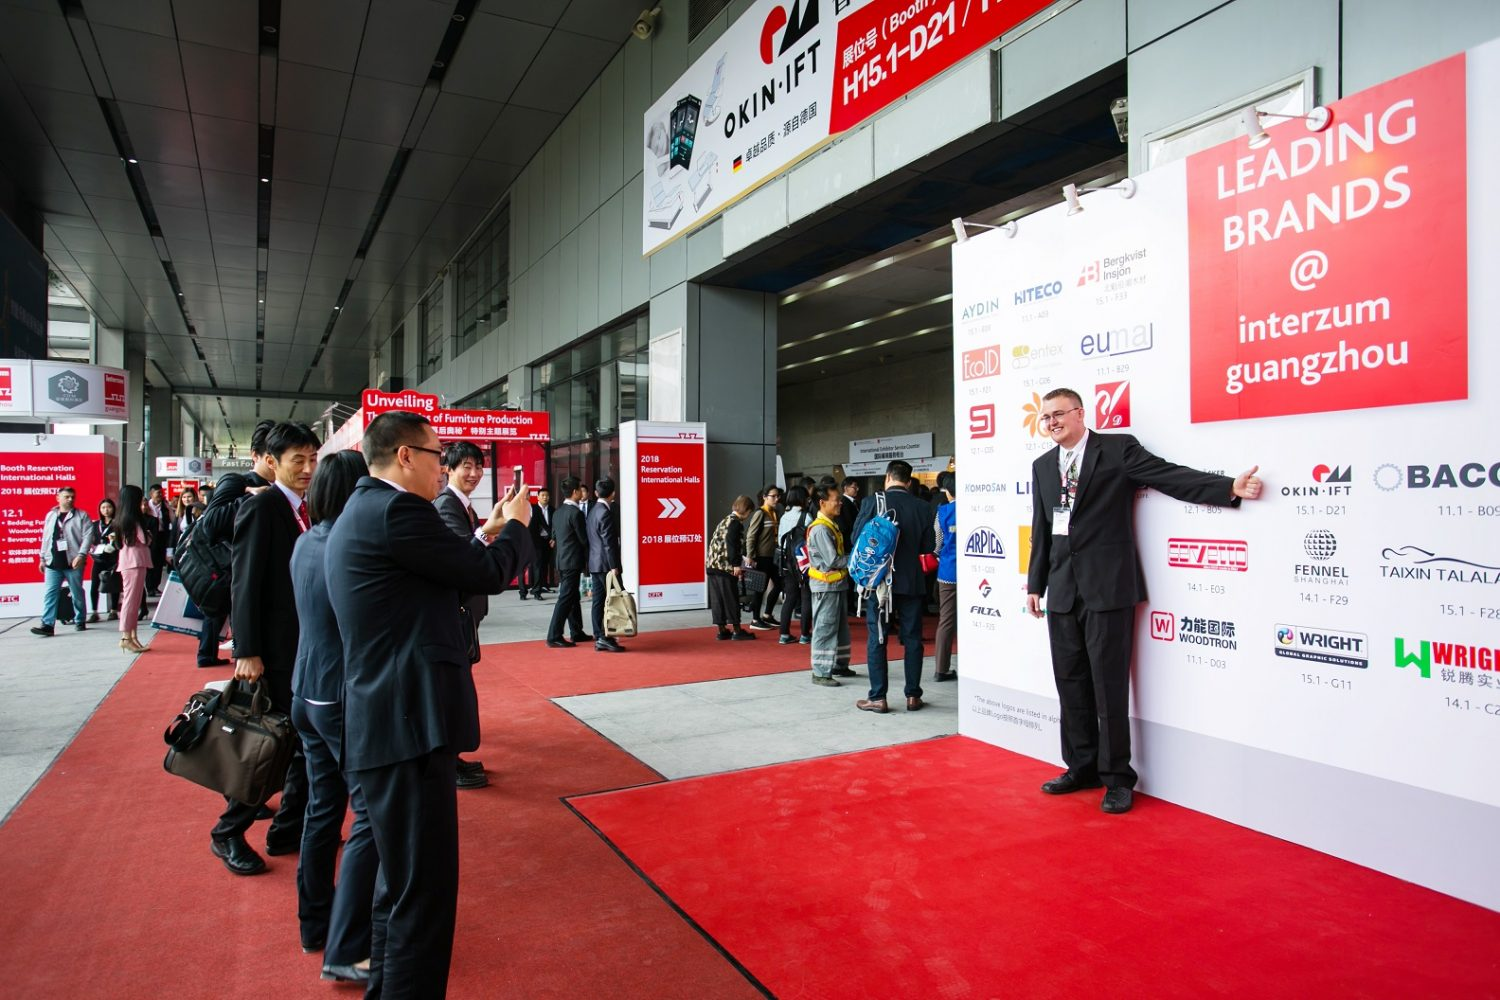 interzum guangzhou 2019 INTERZUM GUANGZHOU 2019 EVENT GUIDE interzum 1